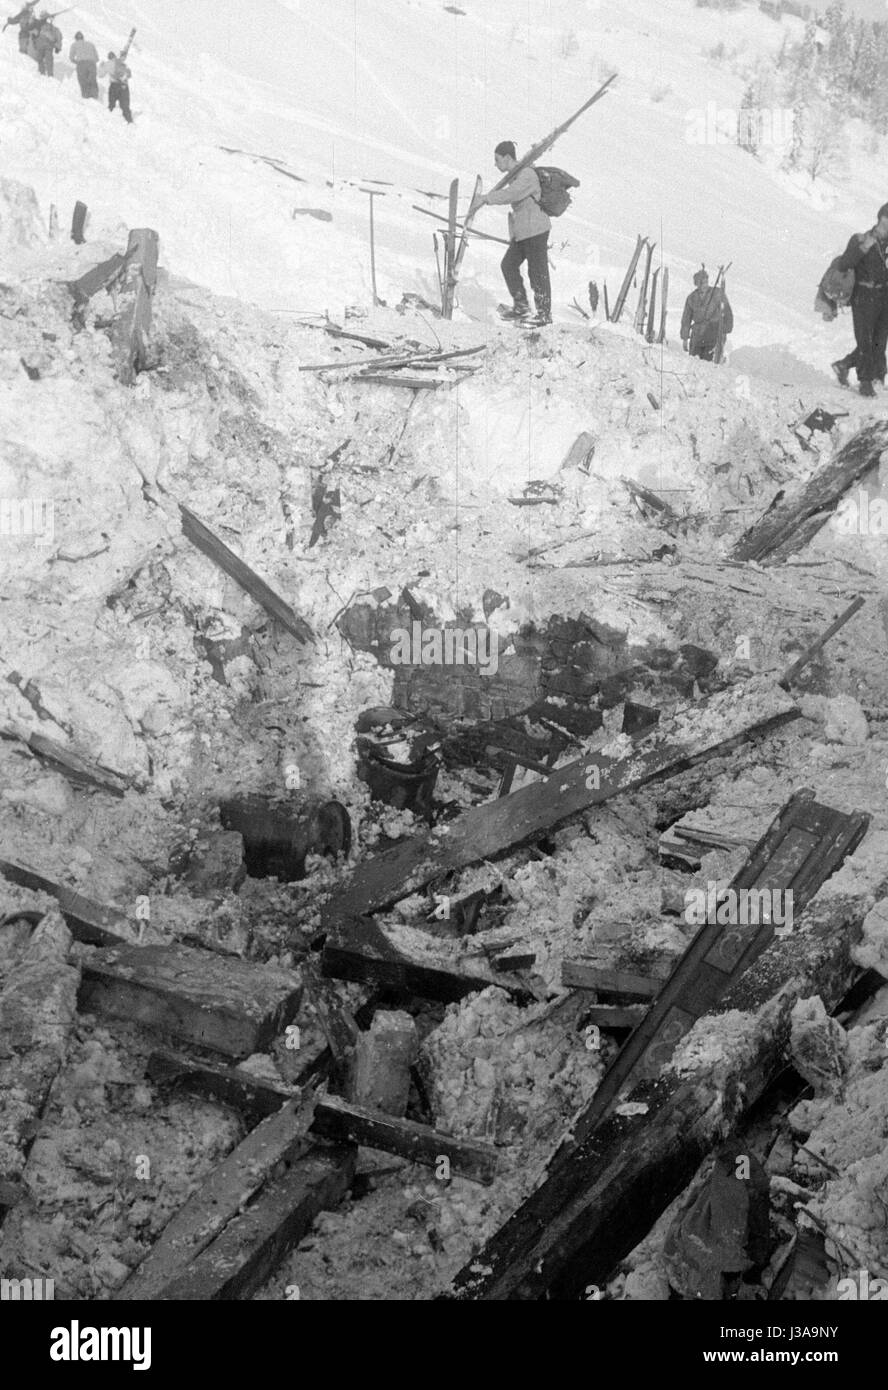 Remains of a destroyed house at Blons after the avalanches, 1954 - Stock Image